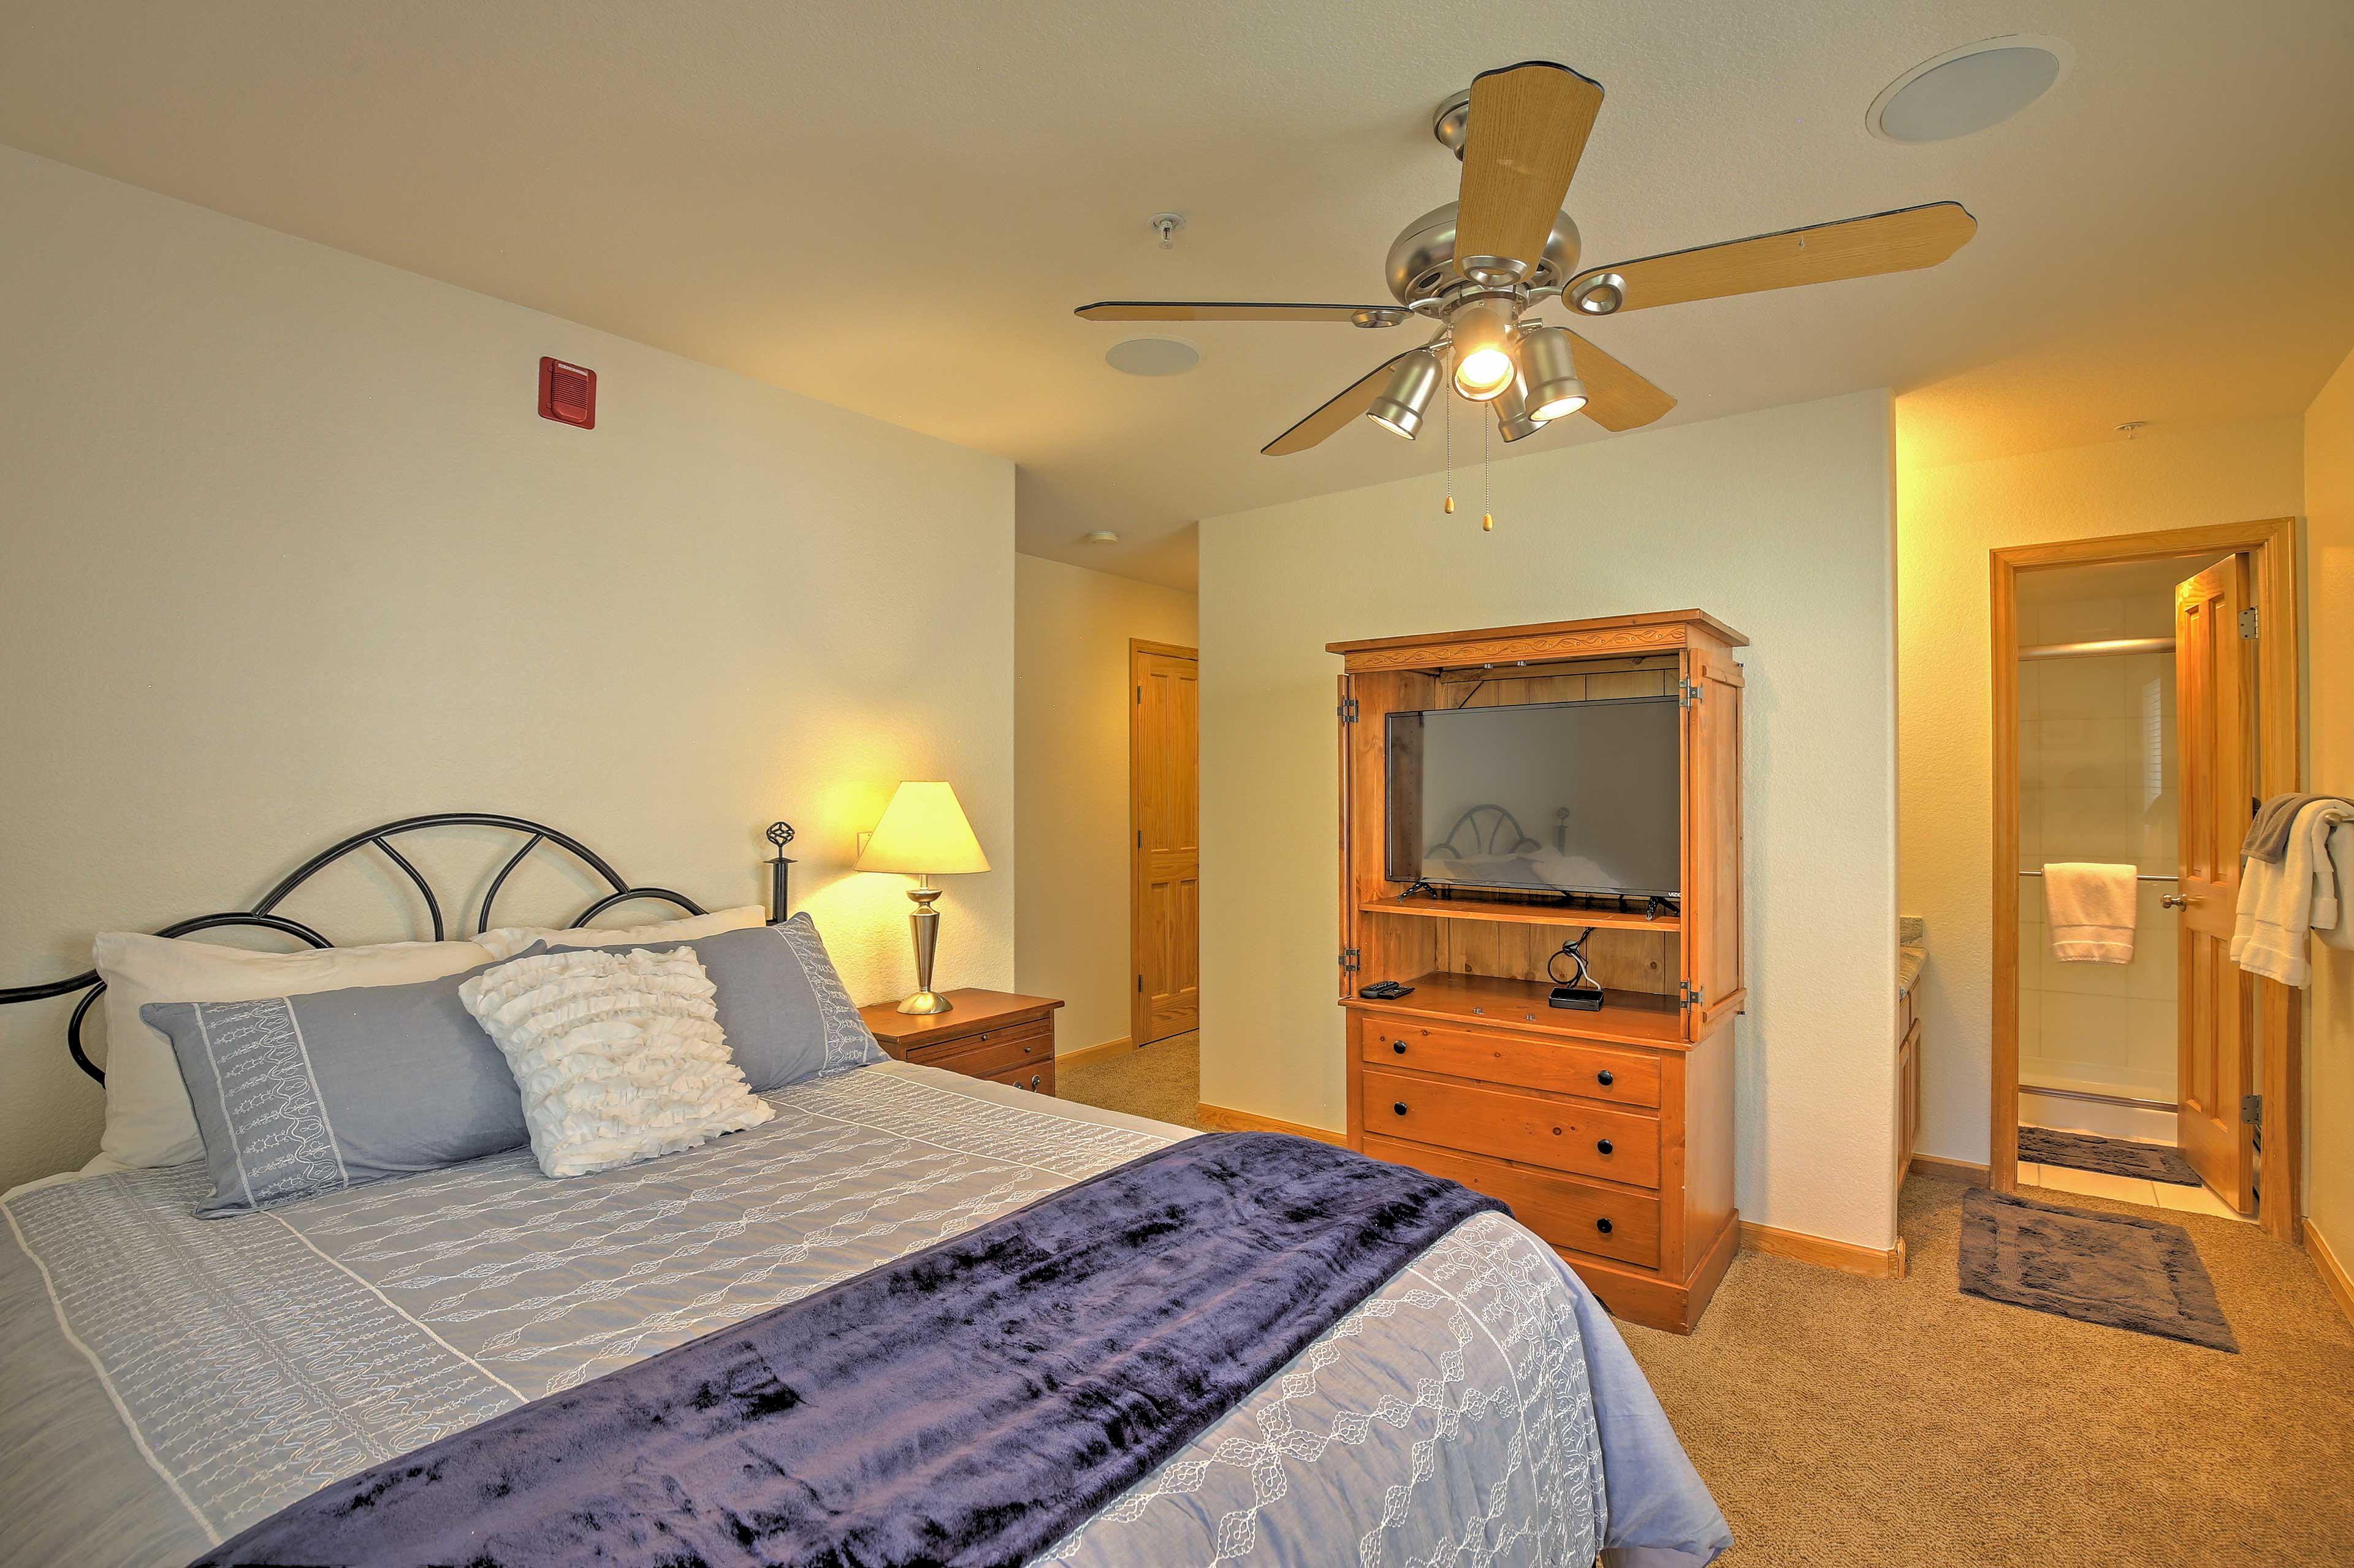 Retire in this room with a queen bed, digital TV, and an en-suite bathroom.